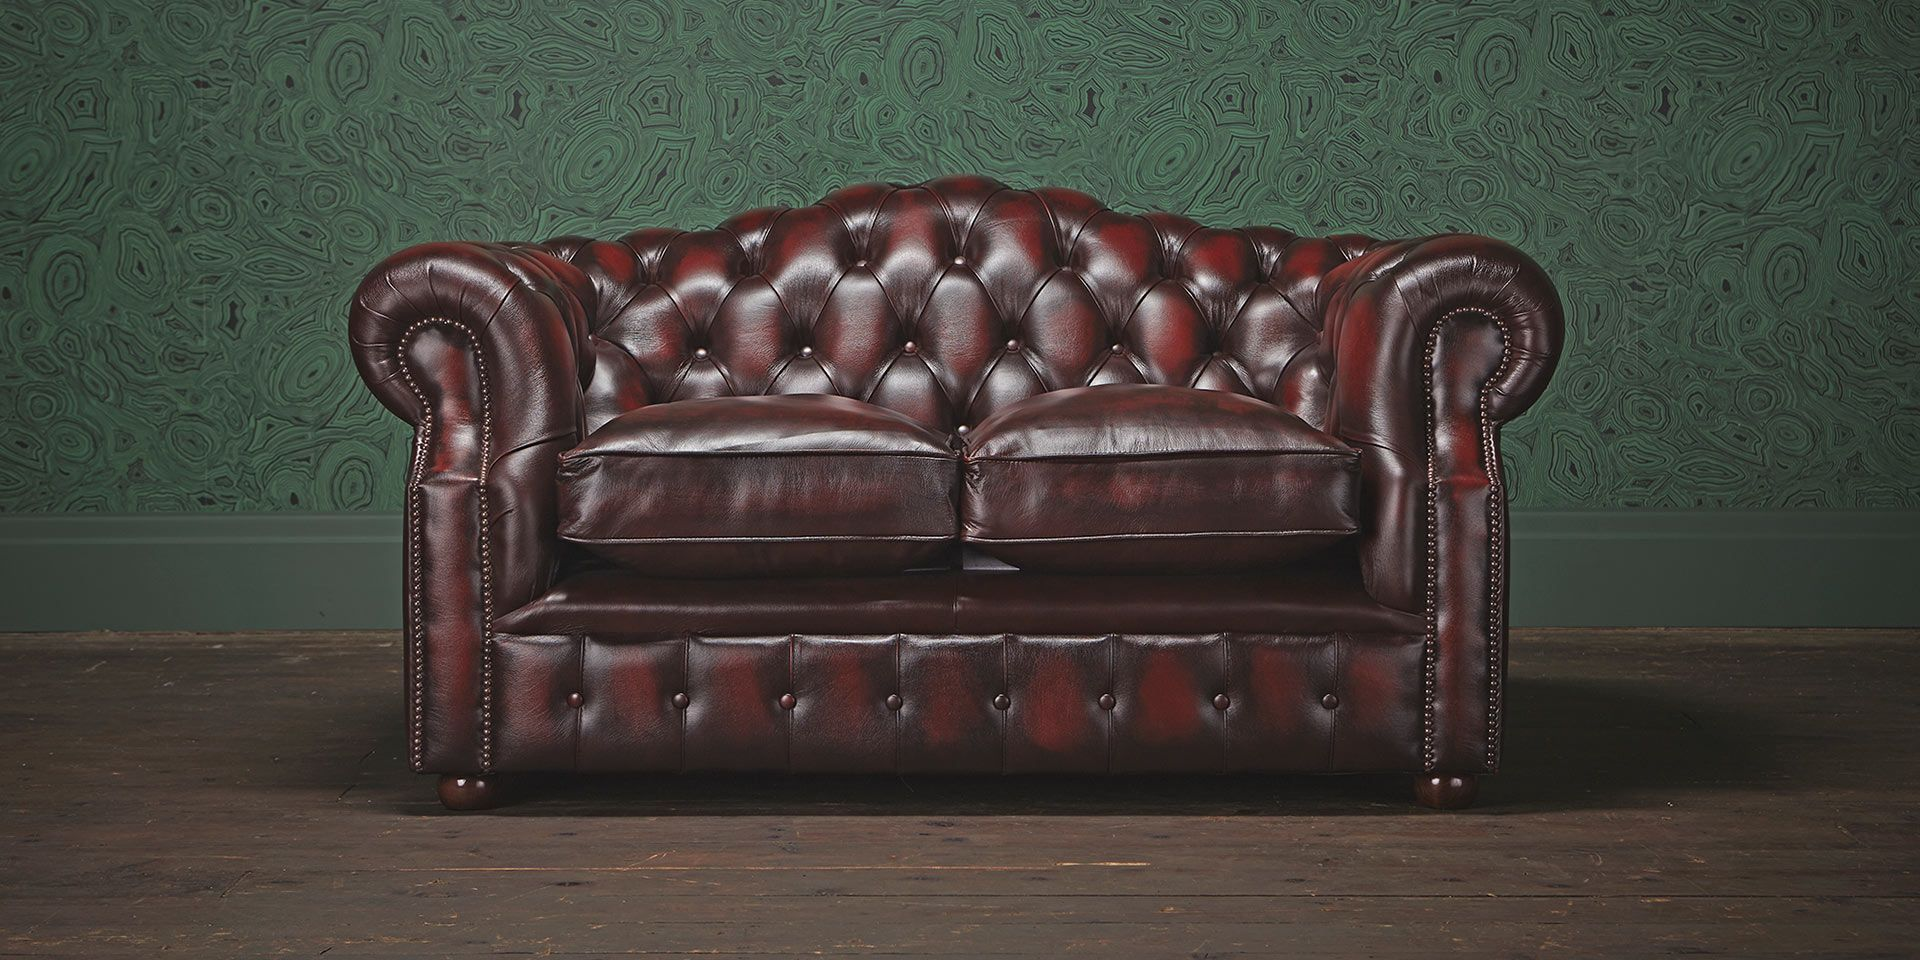 Chesterfield Sofa Oxford Oxford Chesterfield Sofa Chesterfields Of England